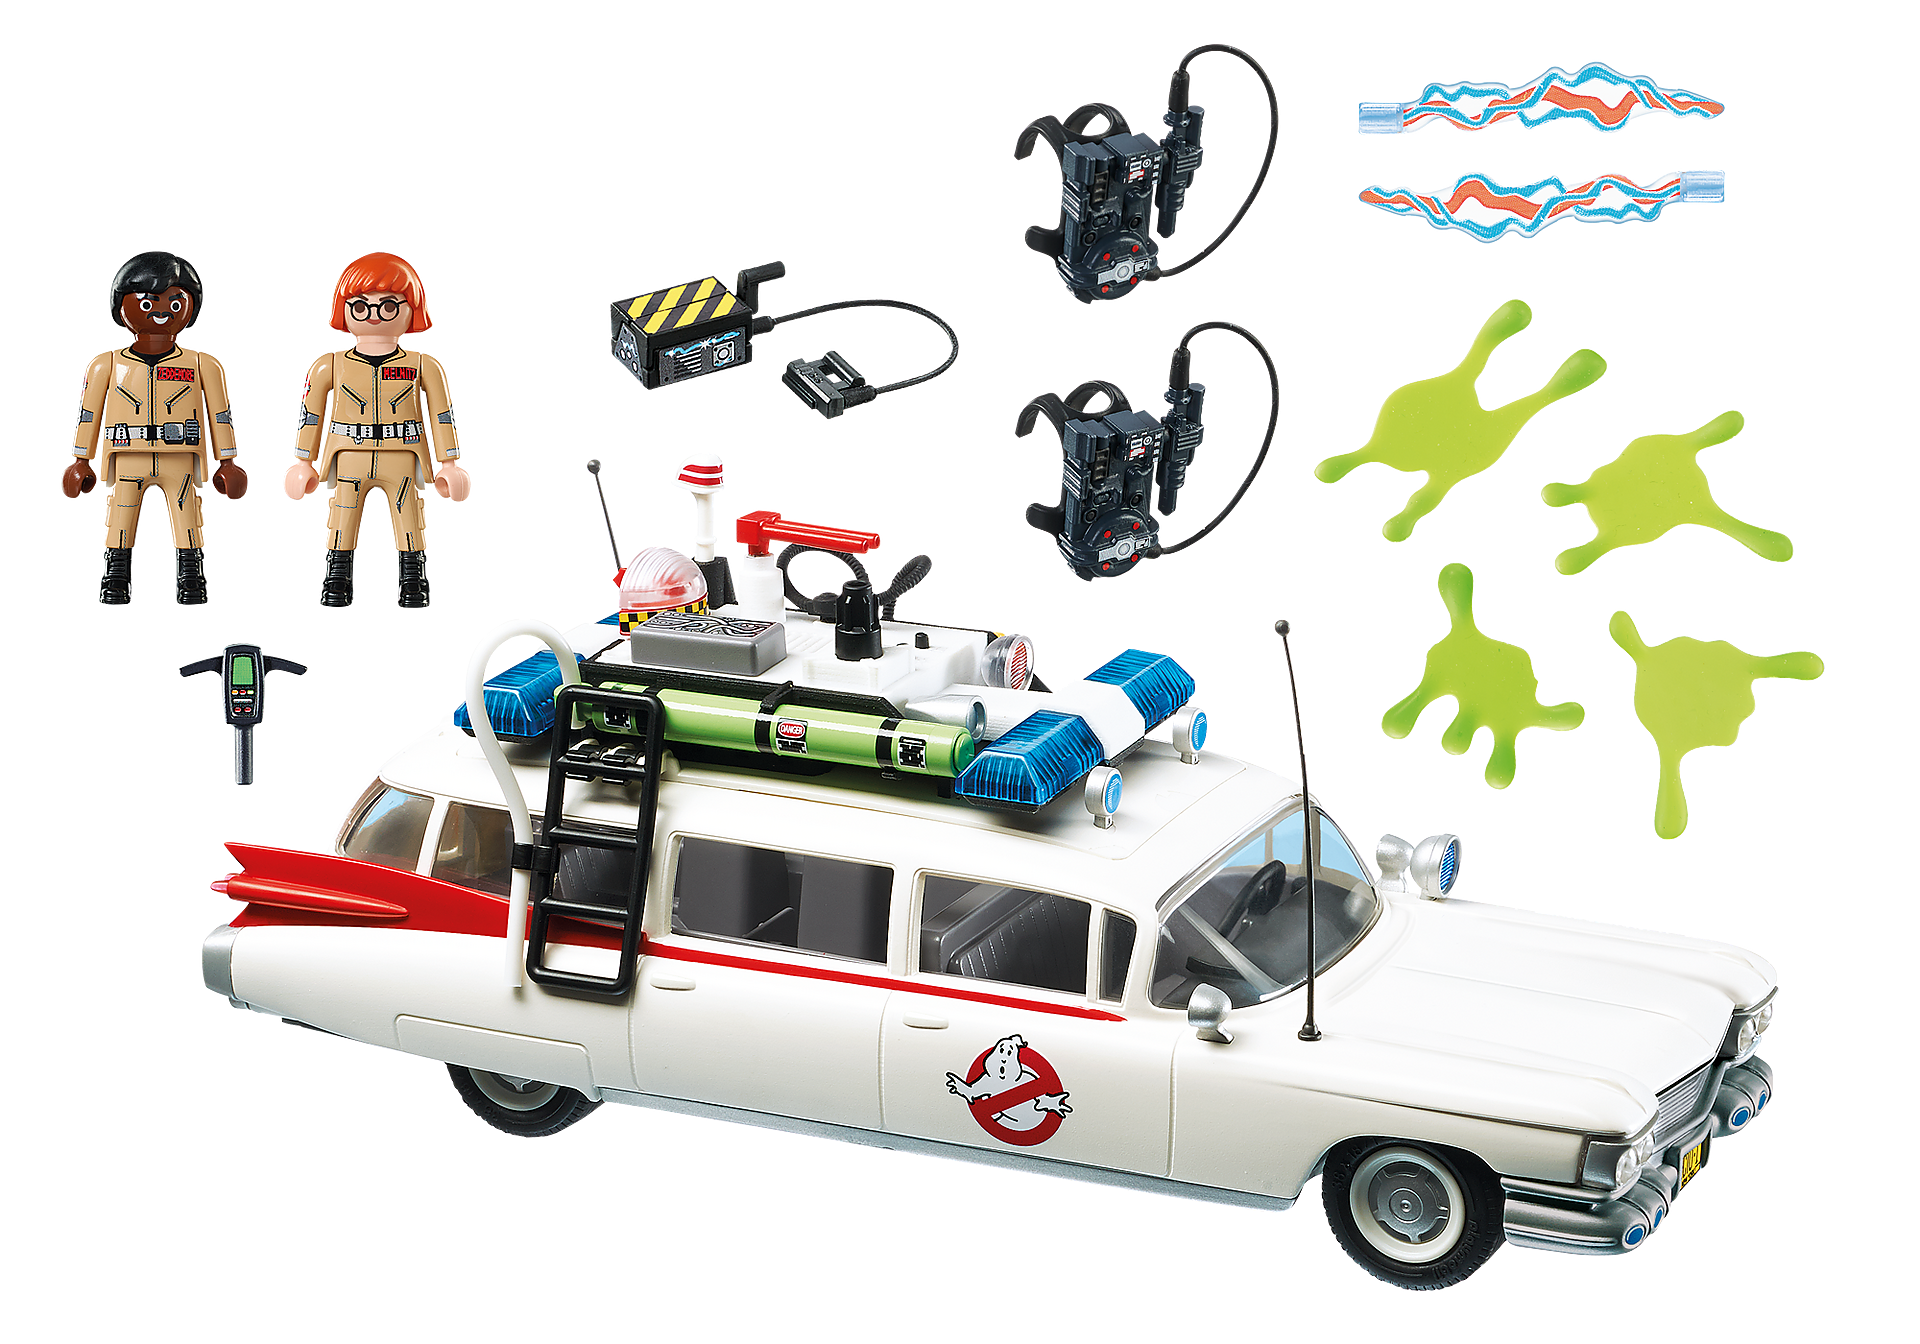 9220 GhostbustersTM Ecto-1 zoom image4